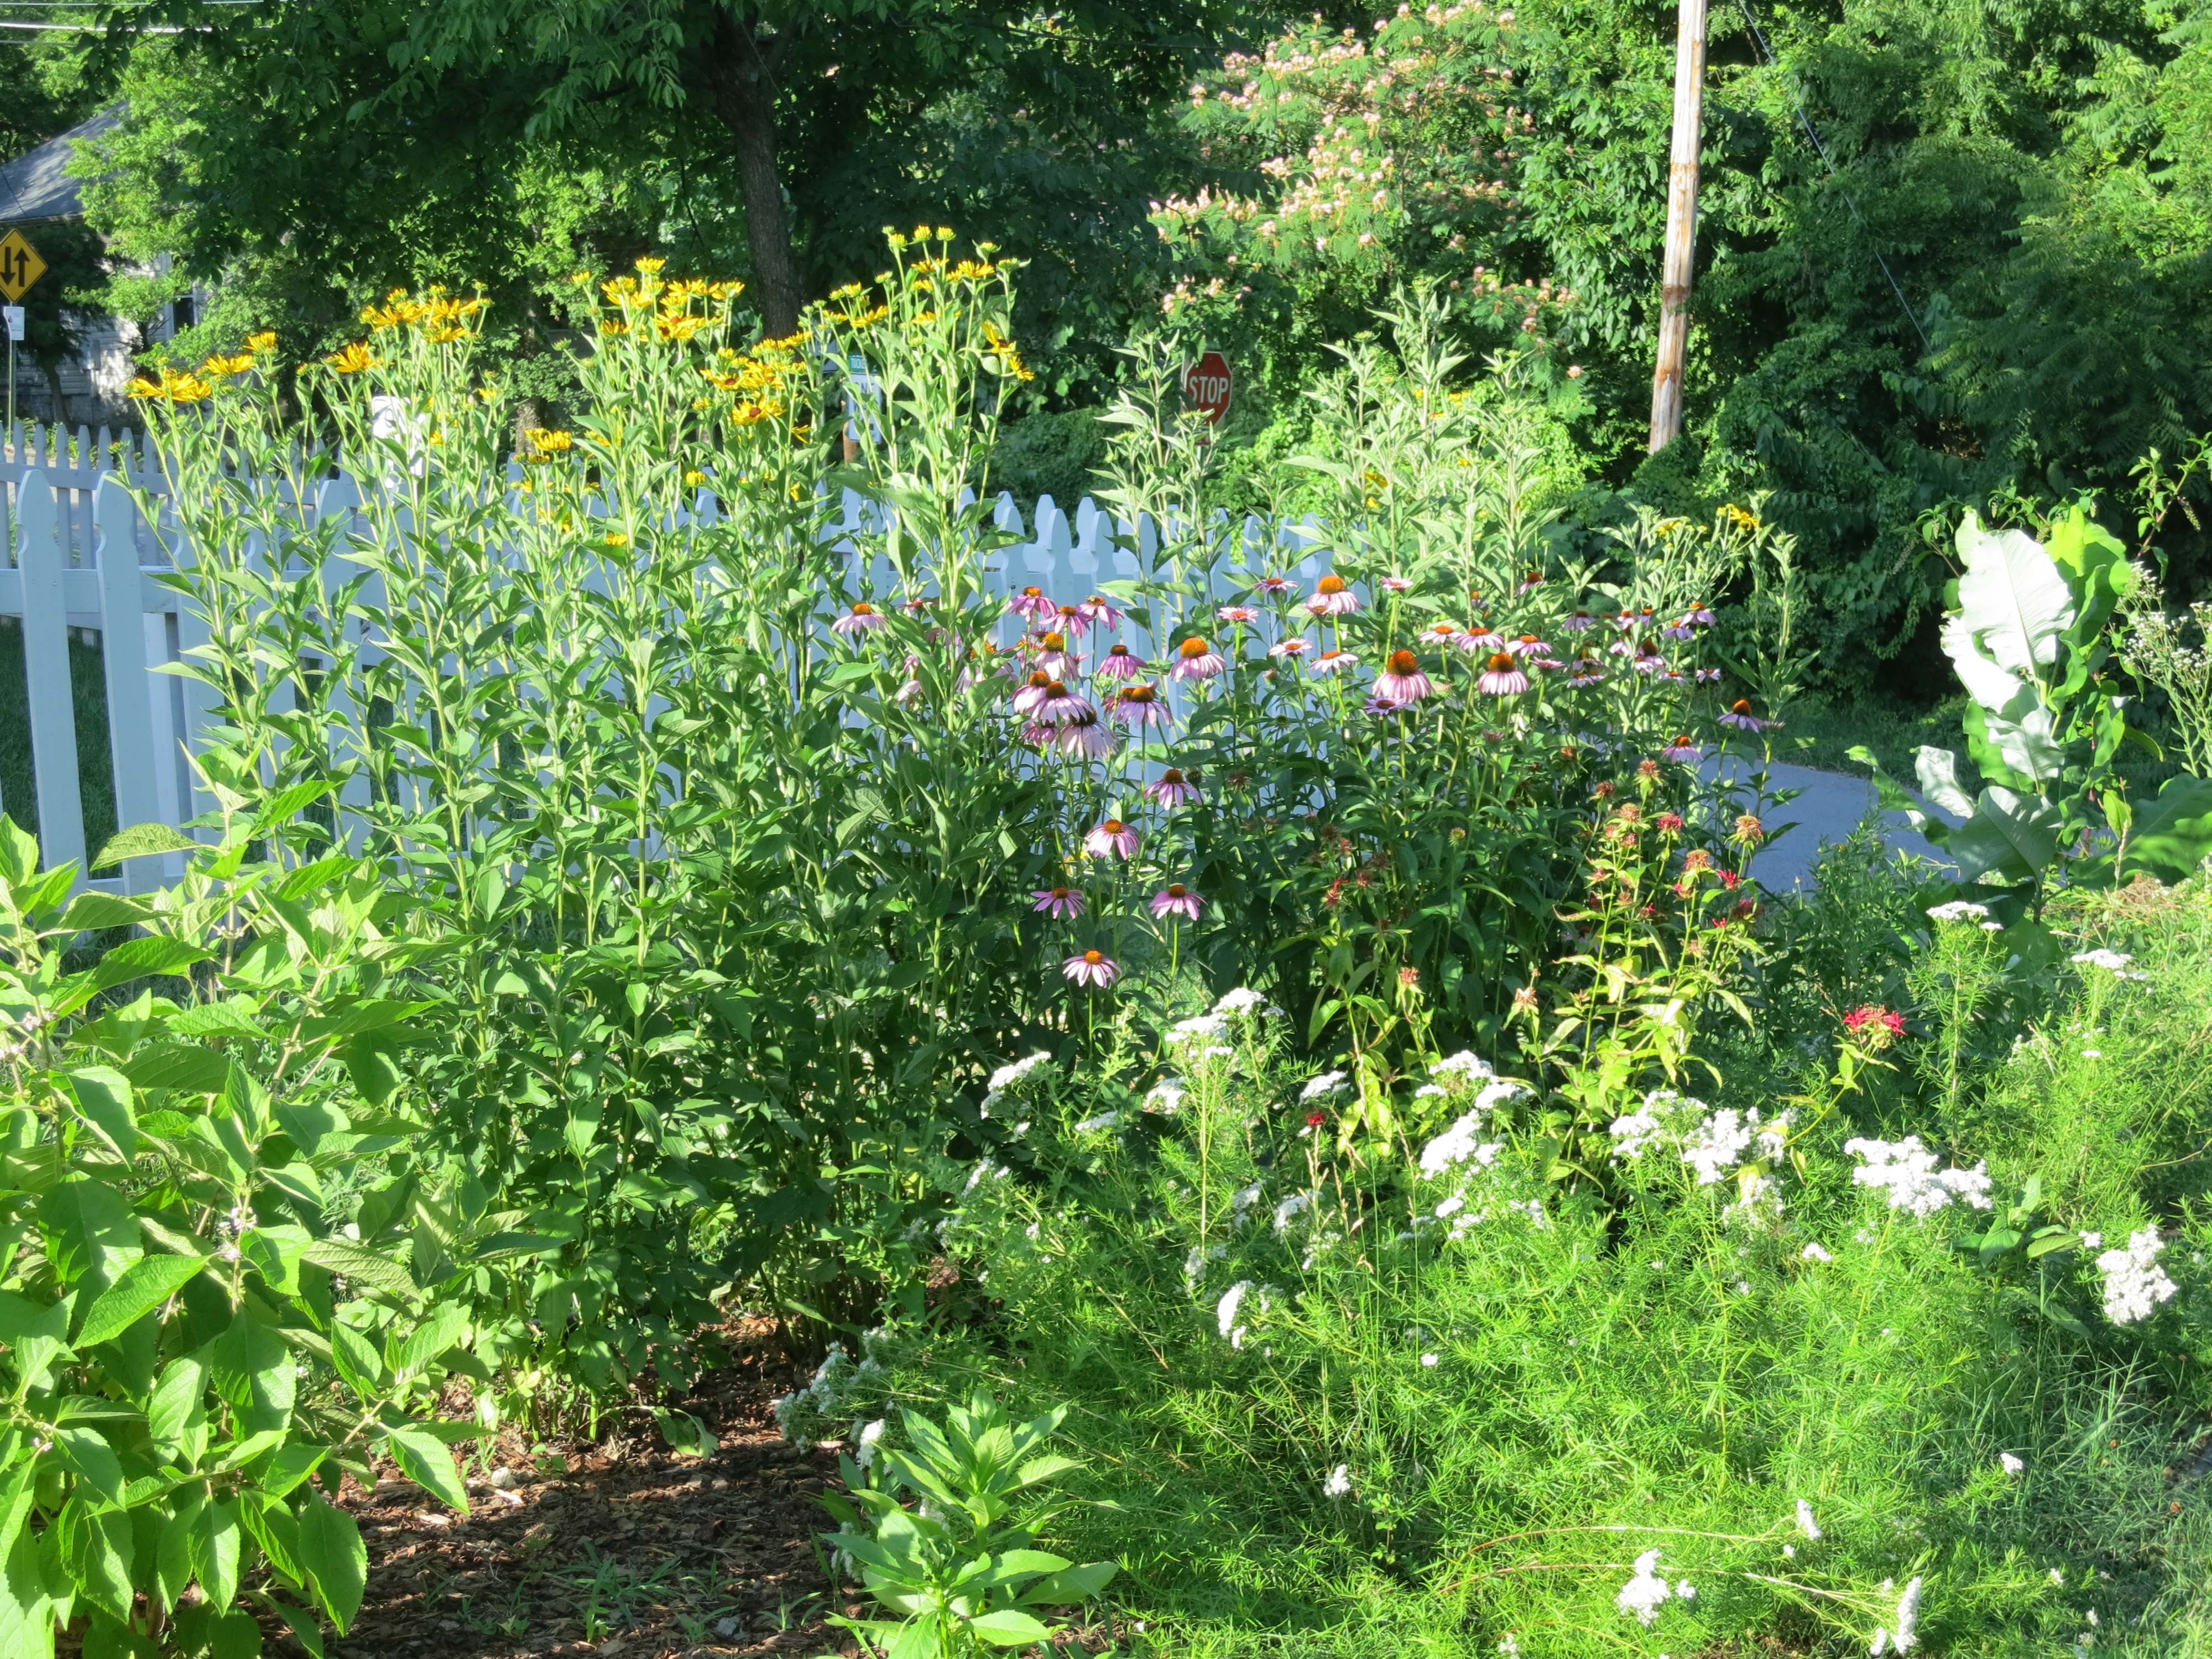 Sweet black-eyed susans, purple coneflowers, bee balm, and narrow leaf mountain mint in June